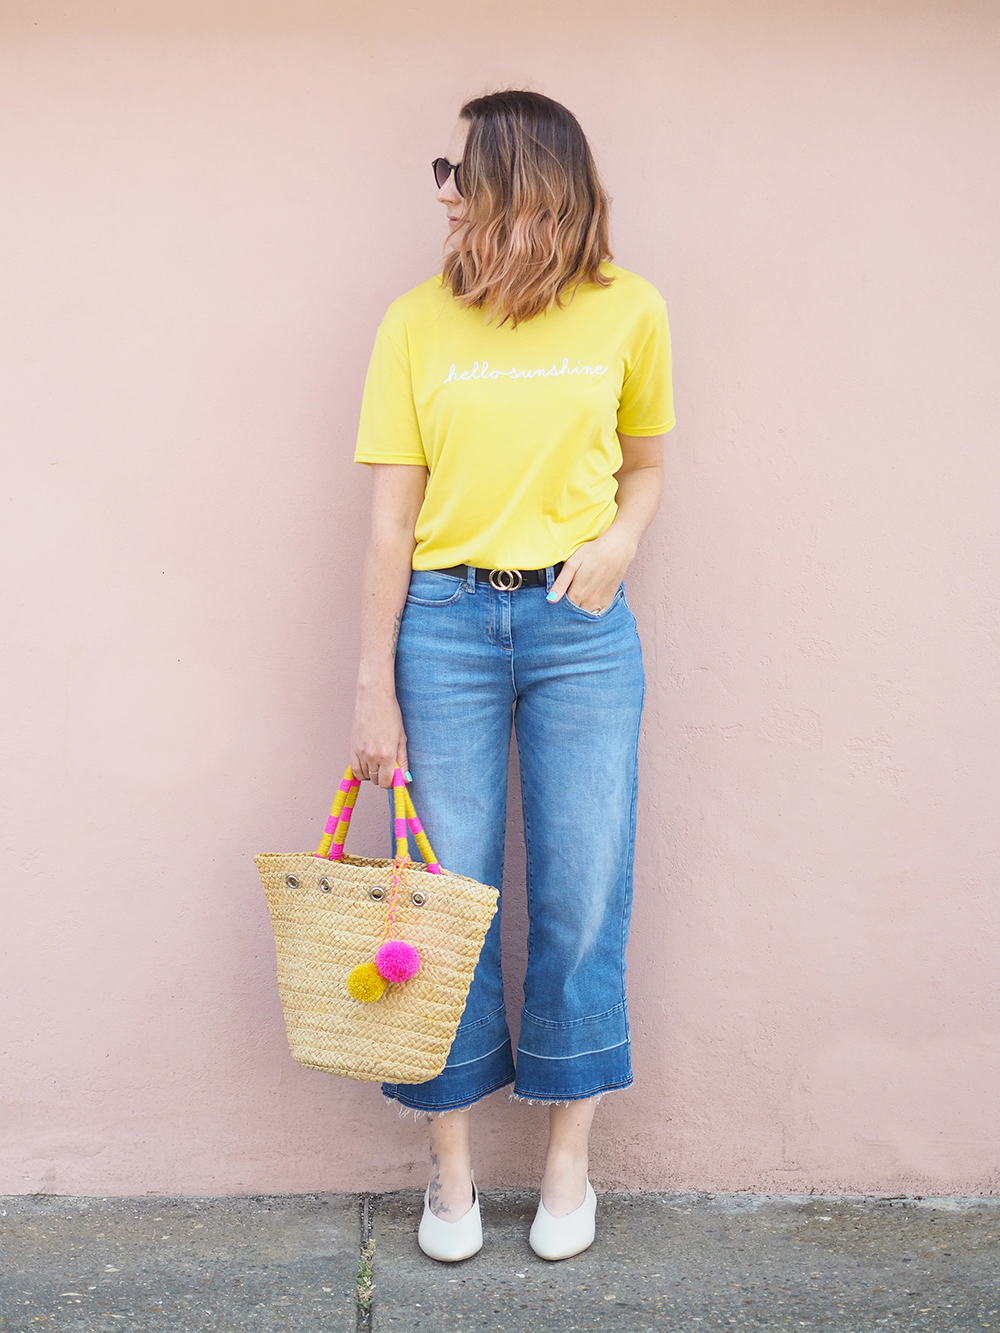 Wearing Bright Colours | Yellow Whistles Tee Outfit - Bang on Style